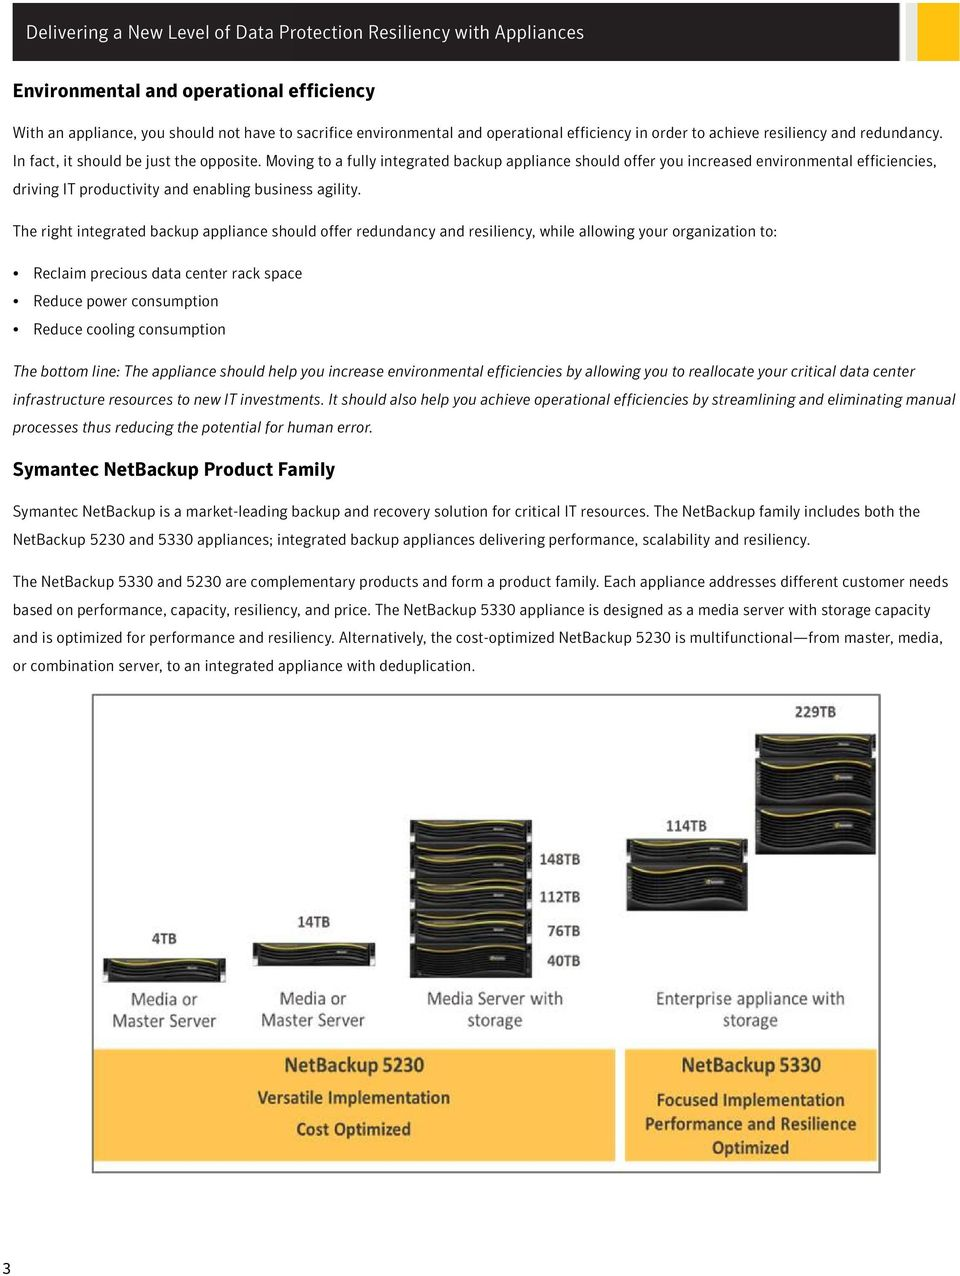 The right integrated backup appliance should offer redundancy and resiliency, while allowing your organization to: Reclaim precious data center rack space Reduce power consumption Reduce cooling